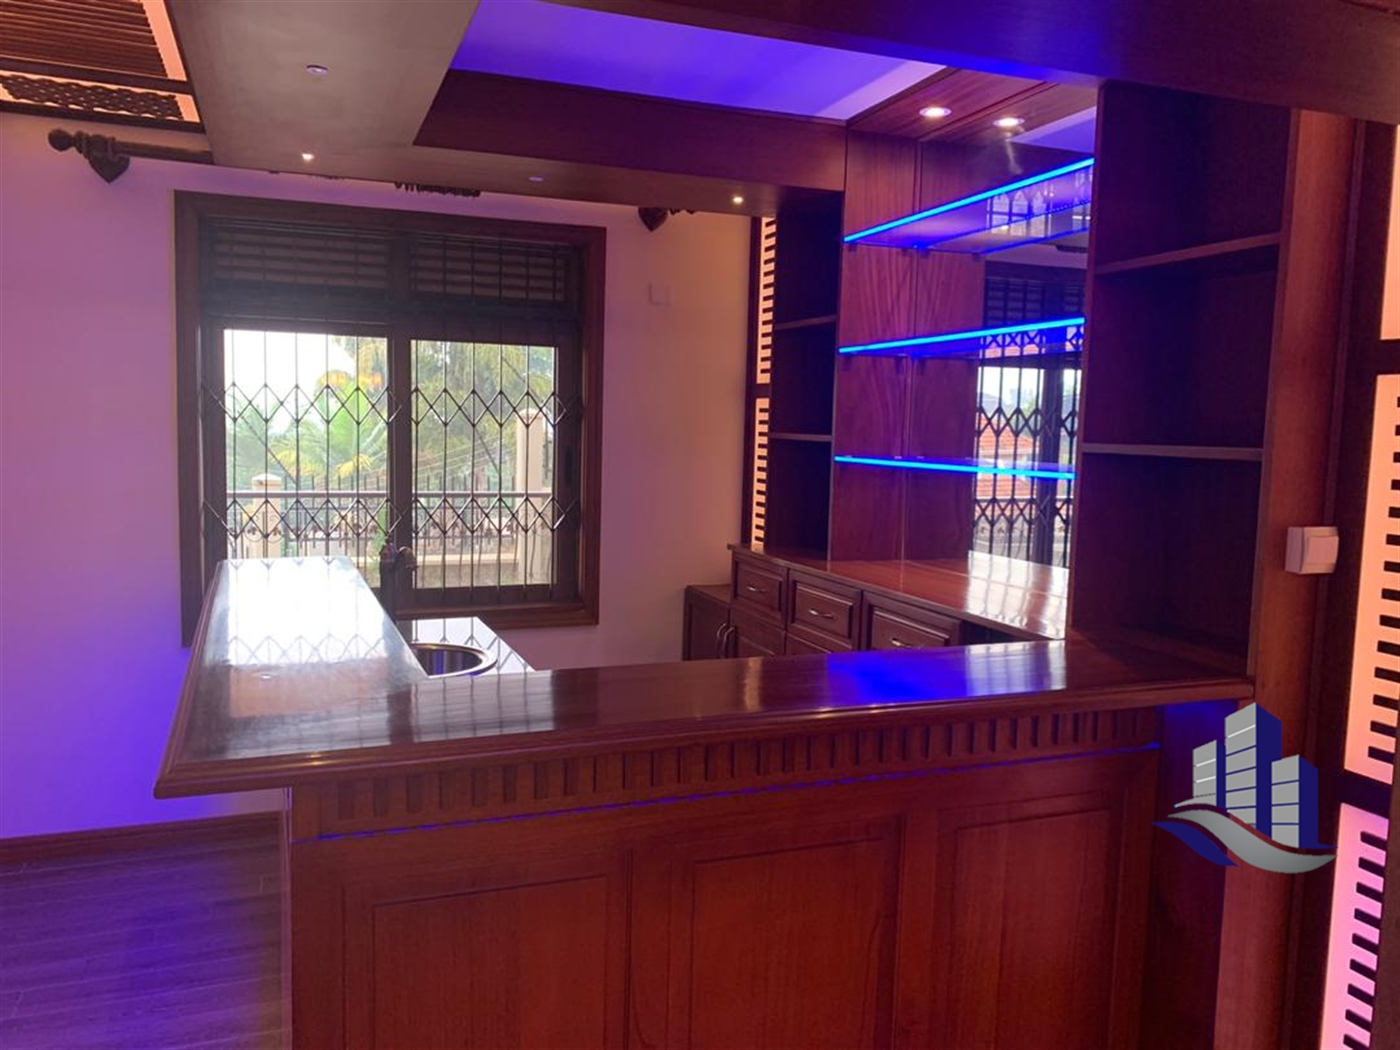 Storyed house for sale in Muyenga Kampala